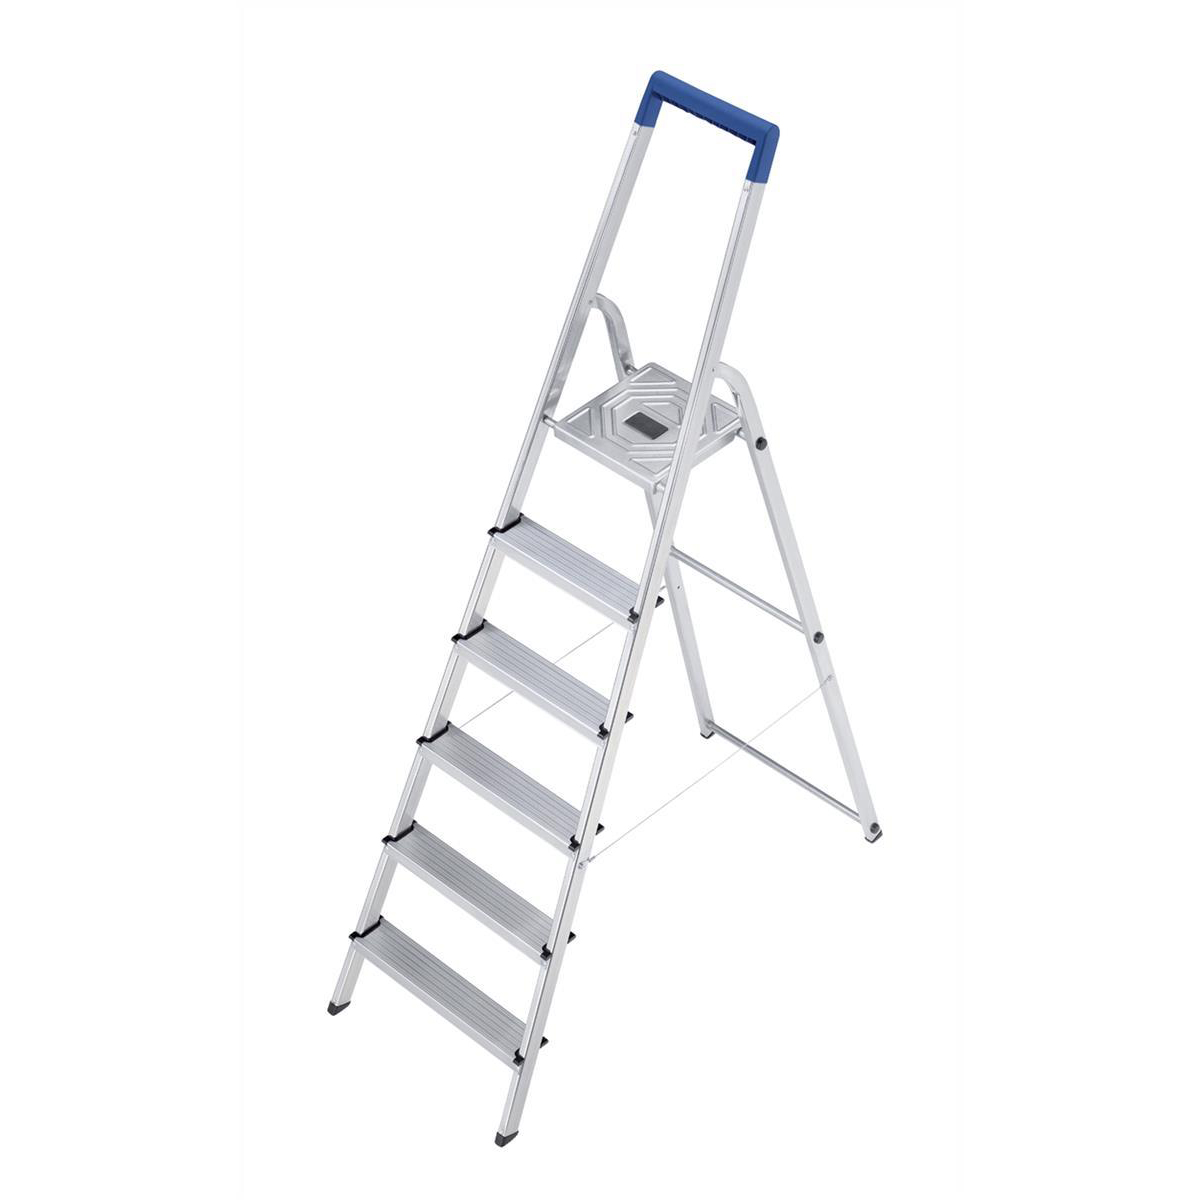 Folding Aluminium Ladder 6 Non Slip Ribbed Steps Capacity 150kg 5.8kg